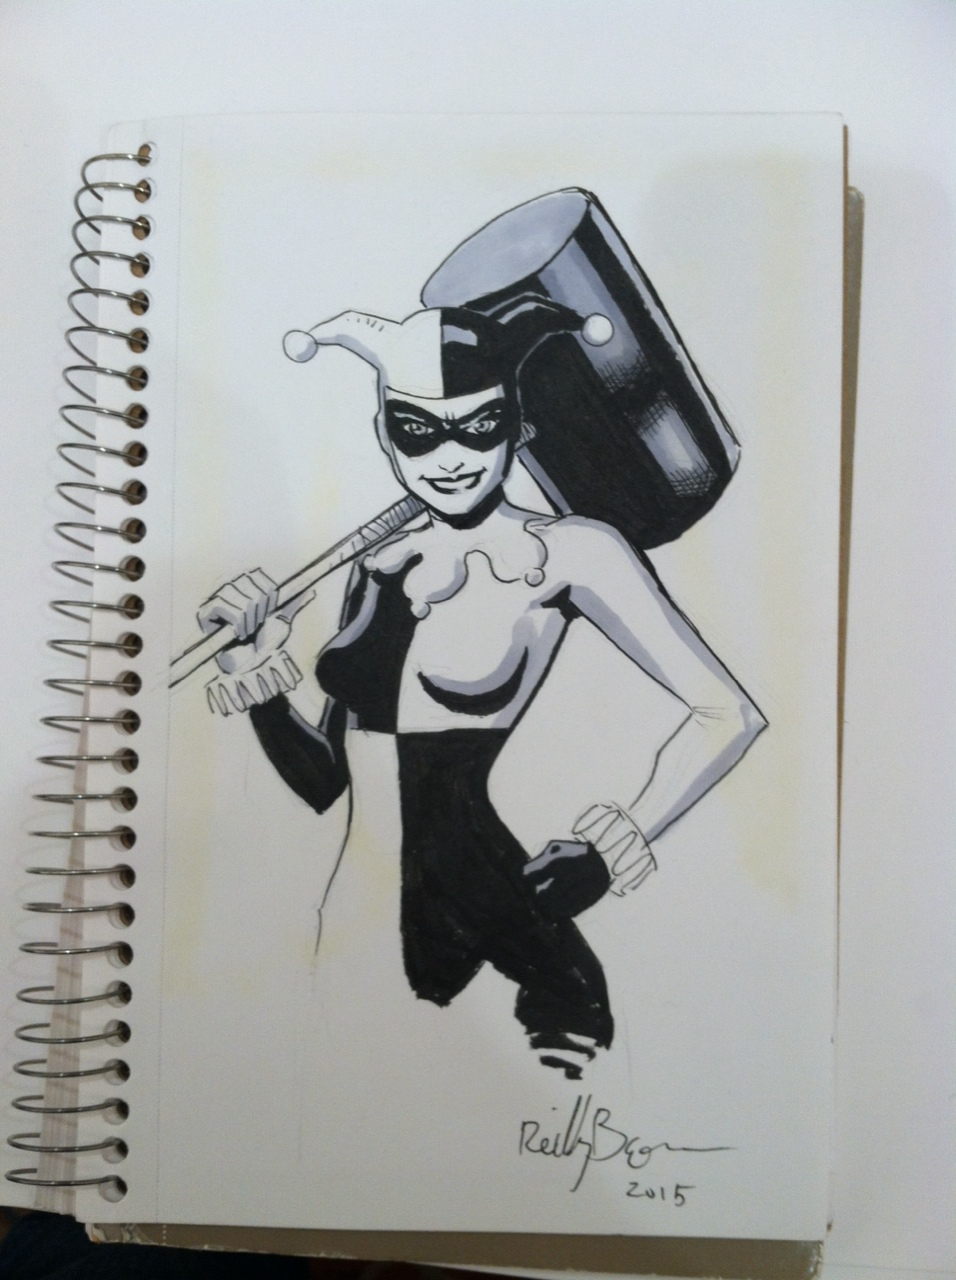 Here's a Harley Quinn commission I did. Original costume ftw!